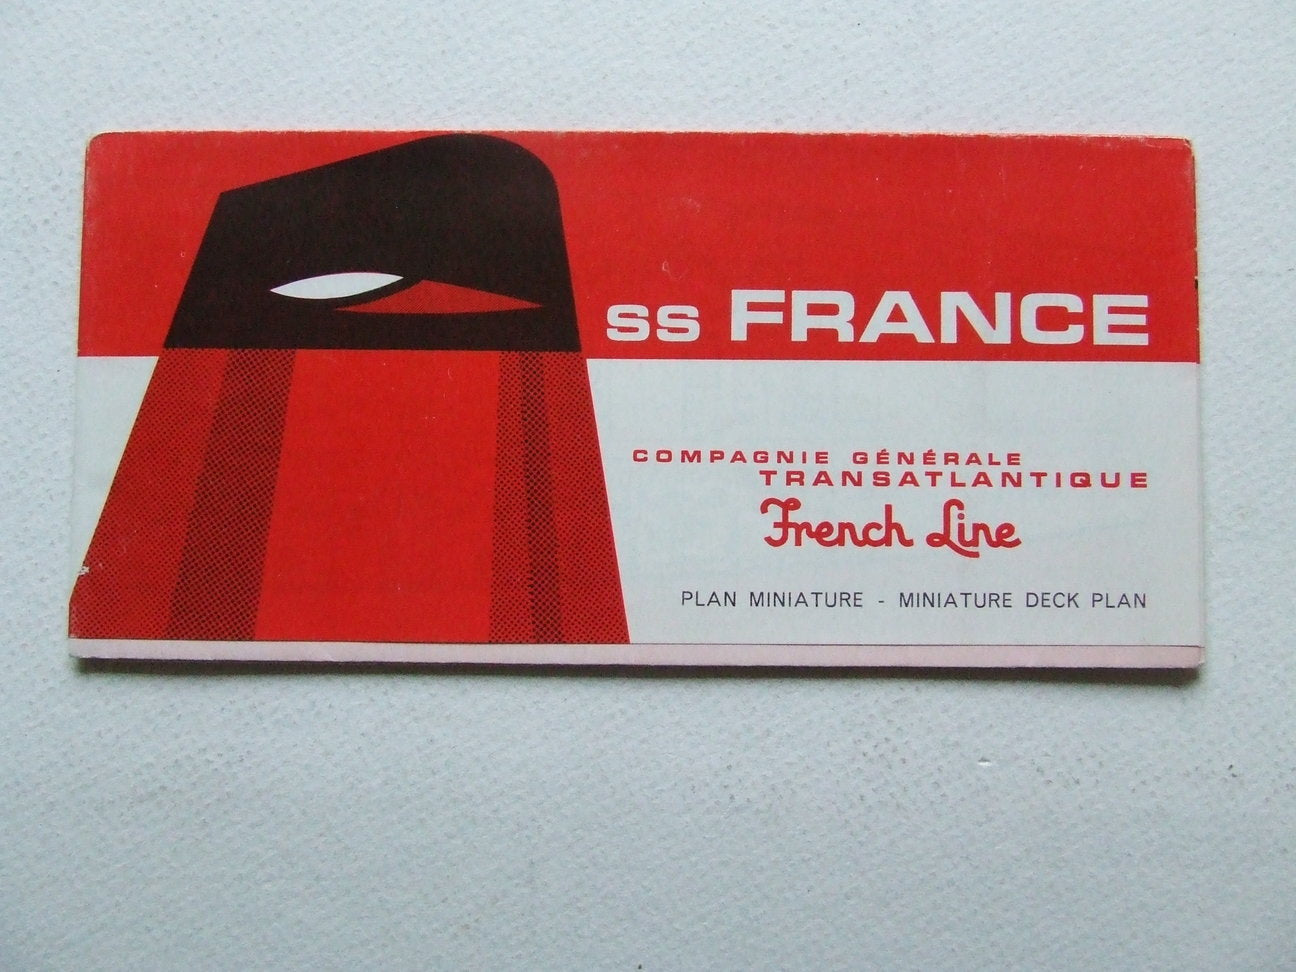 ss France - Plan Miniature / Miniature Deck Plan